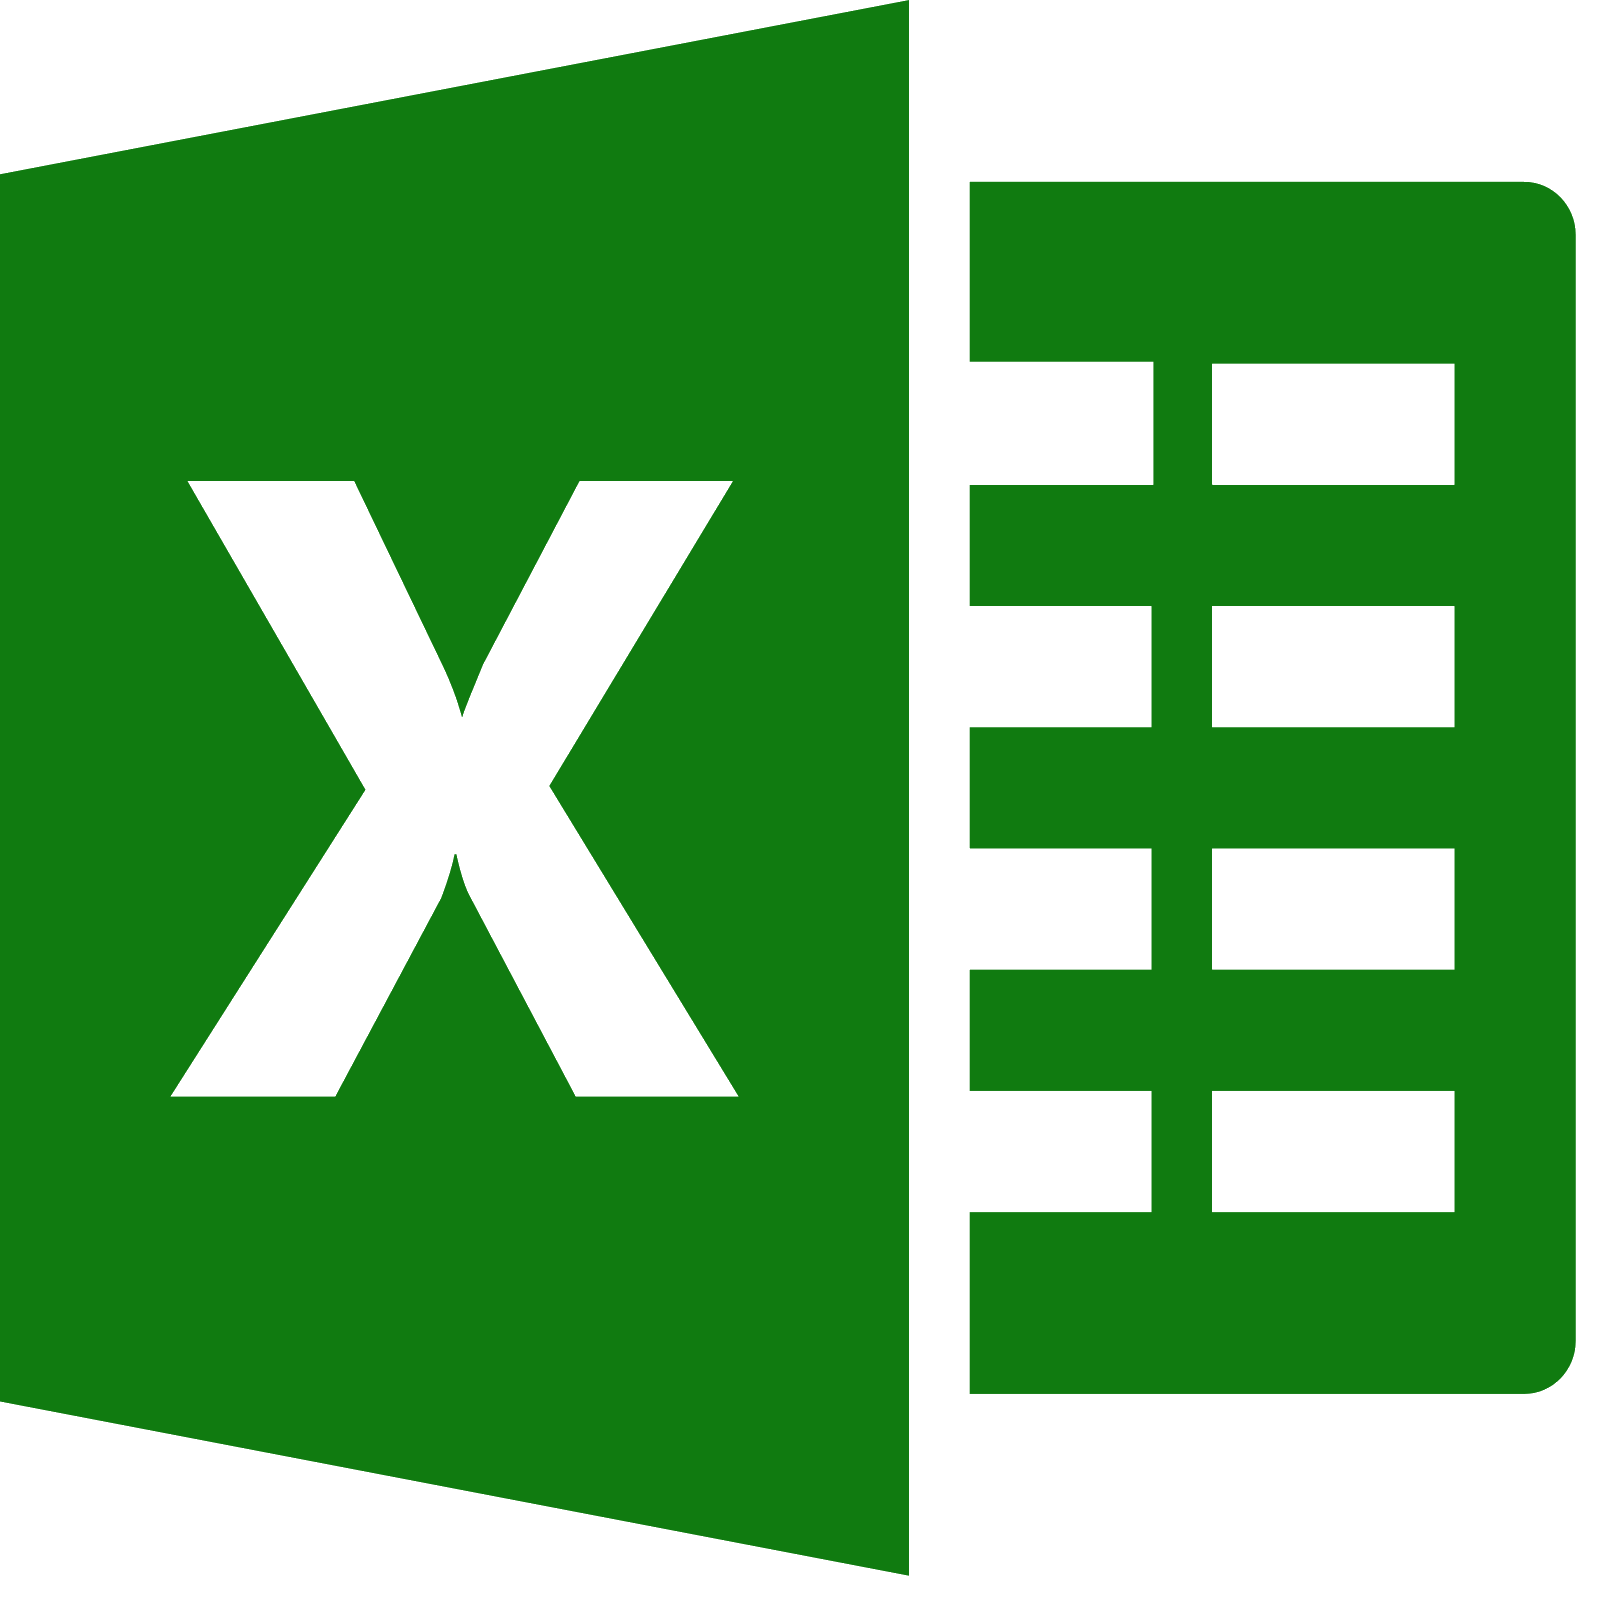 Icon excel clipart clip black and white library Microsoft Excel Computer Icons Microsoft Office Clip art ... clip black and white library